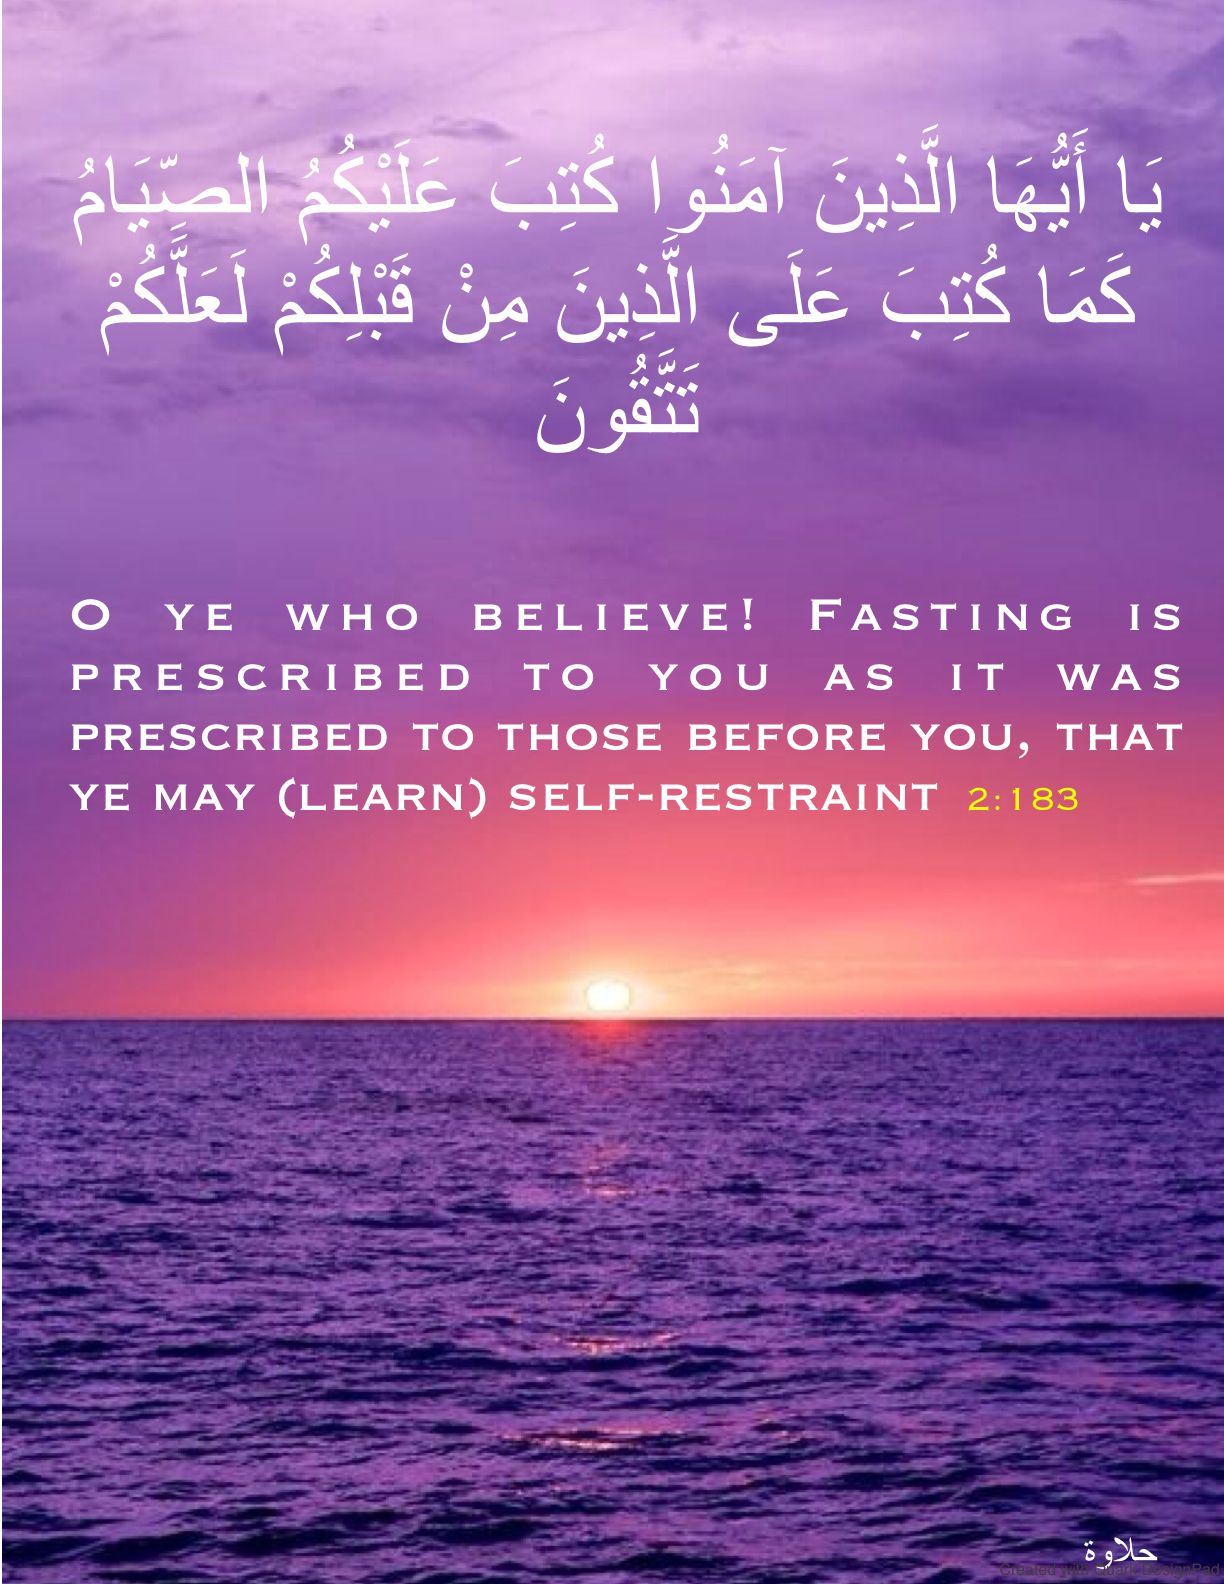 Fasting is prescribed for the believers